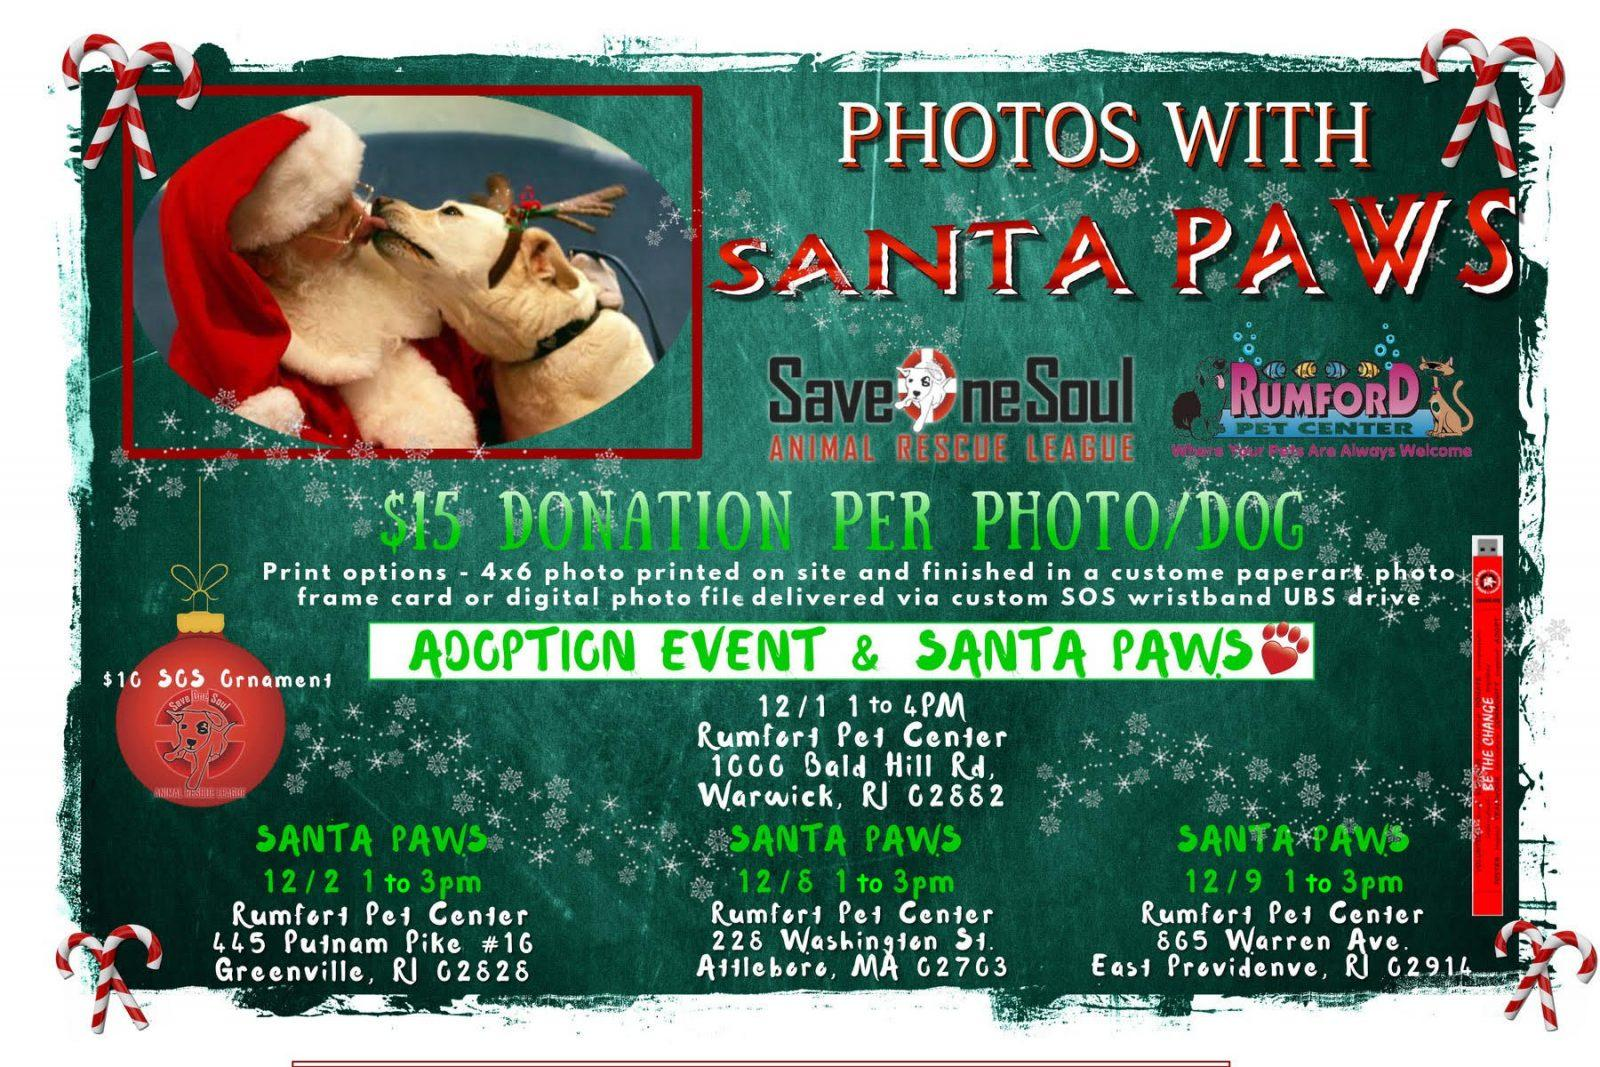 Photos with Santa Paws | Save One Soul Animal Rescue League